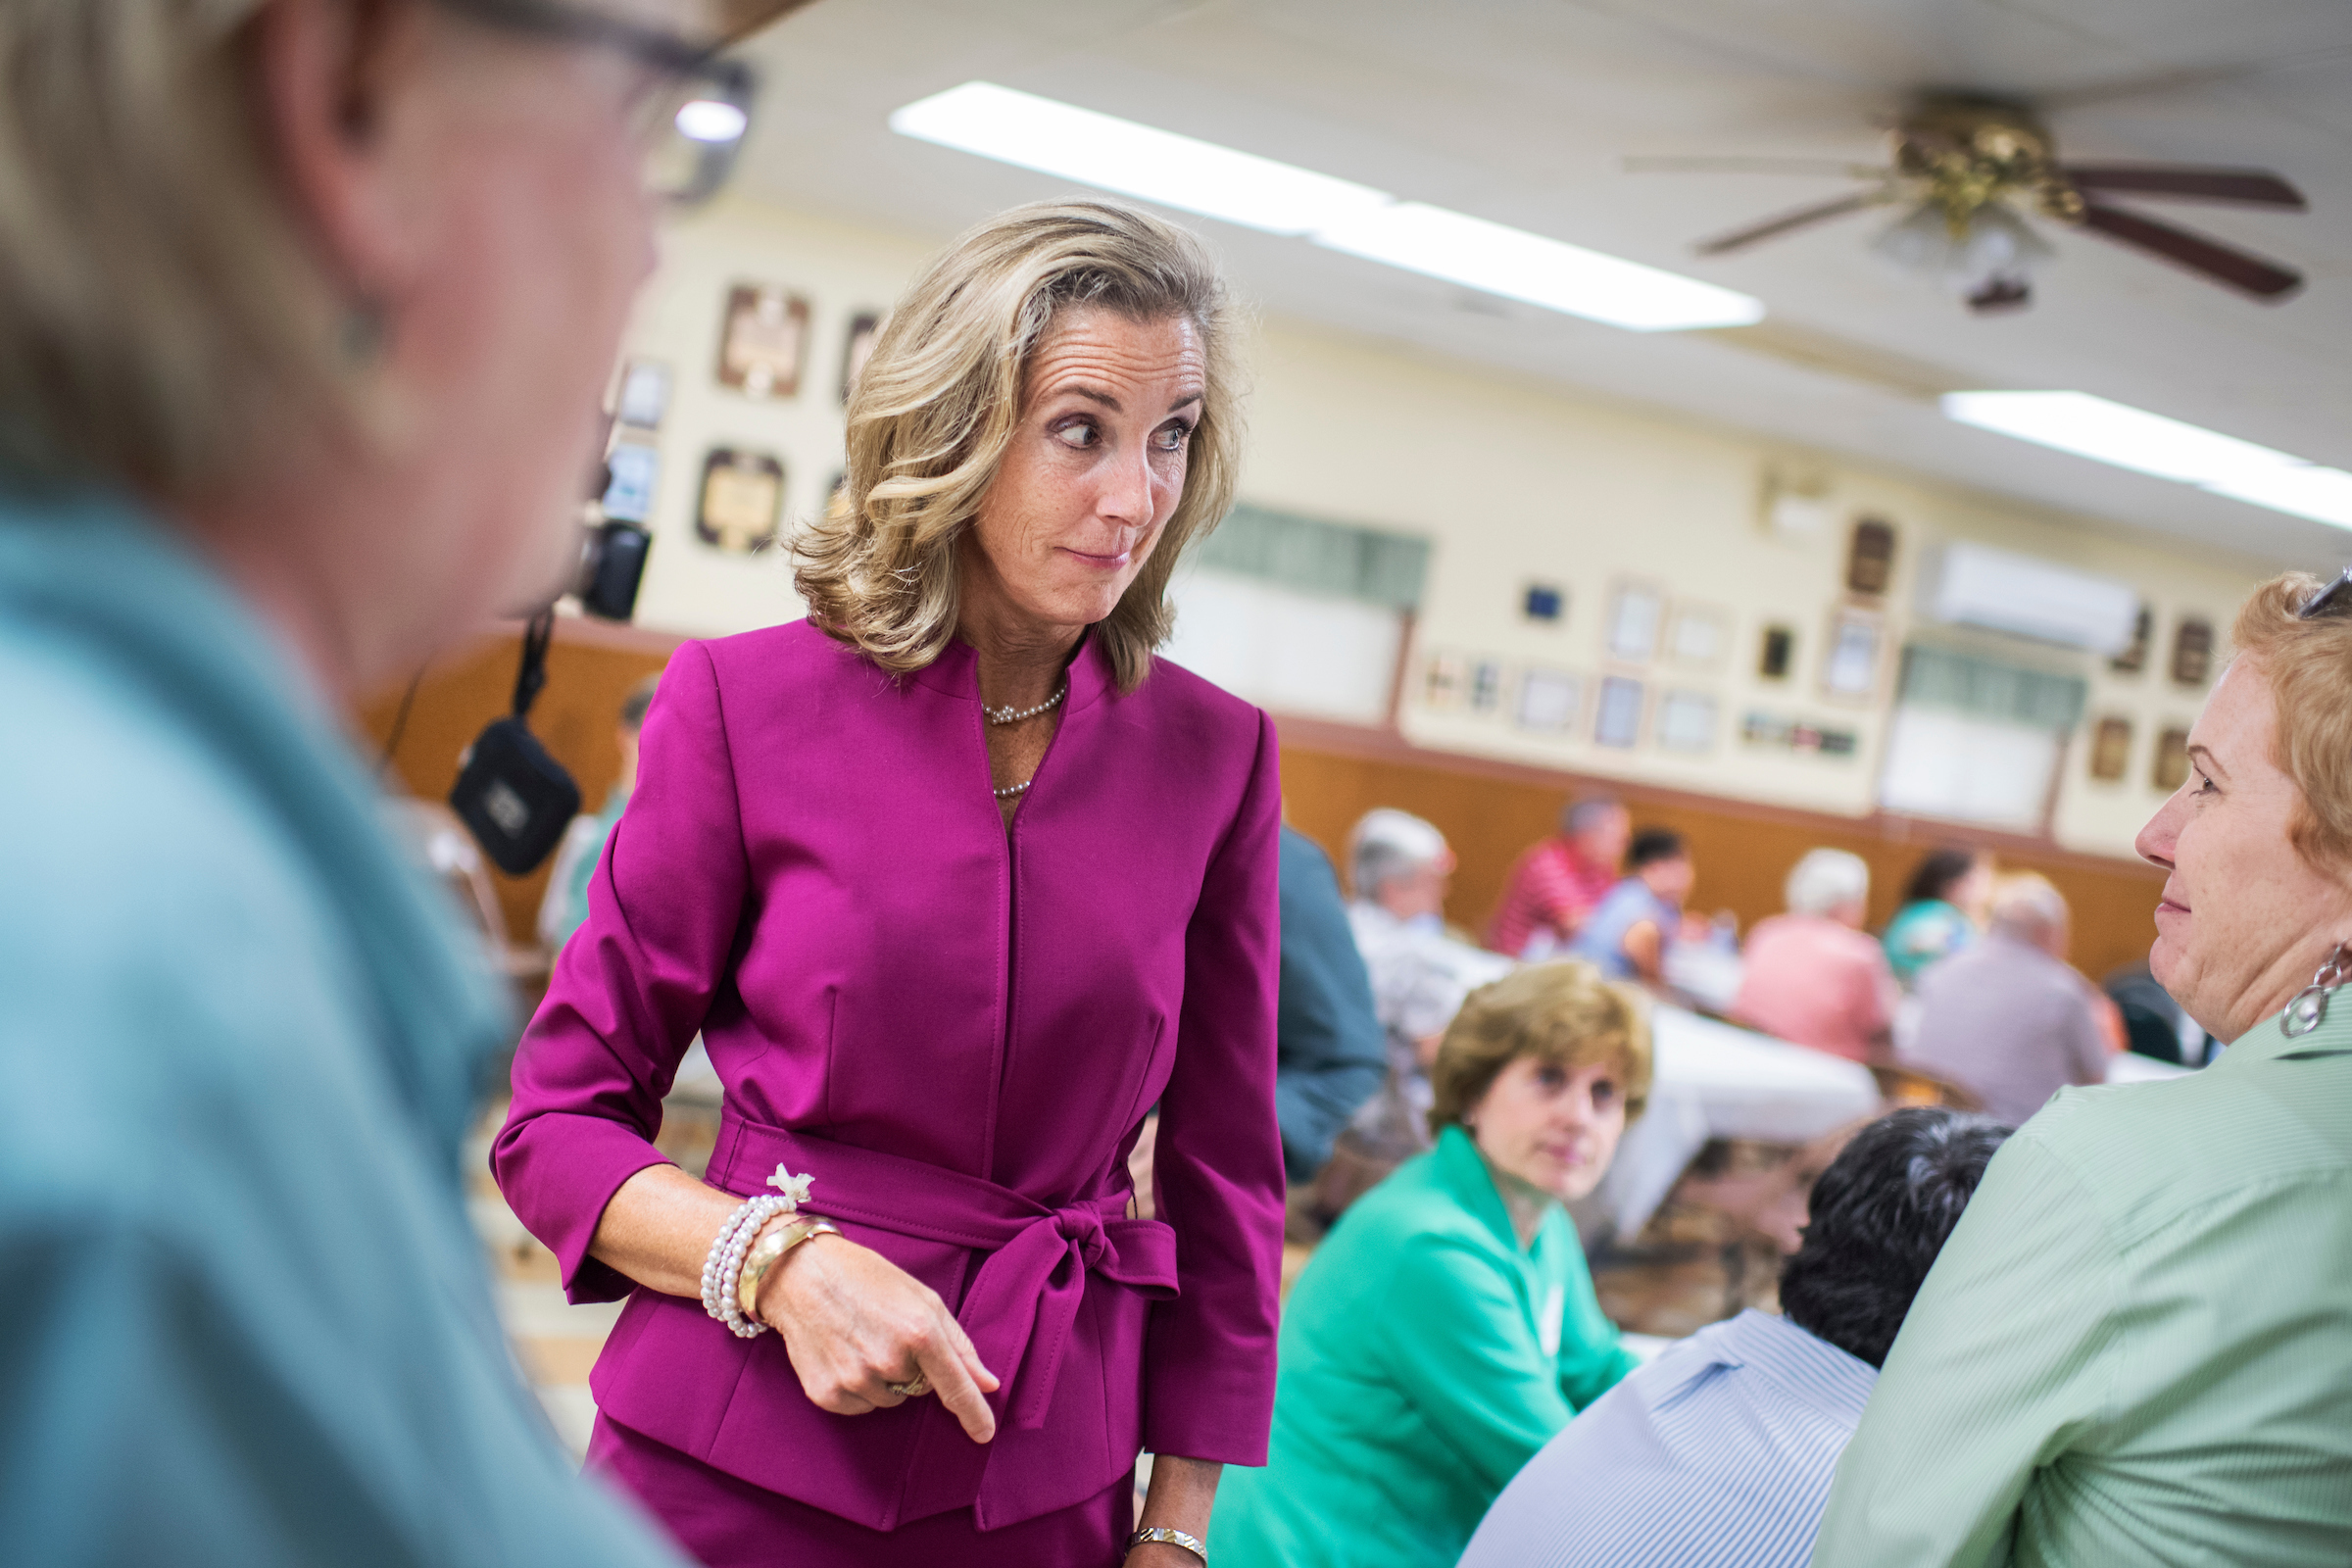 UNITED STATES - AUGUST 17: Katie McGinty, Democratic candidate for Pennsylvania Senate, talks with guests during the Annual Penn Ag Democrat Barbeque at the Ferguson Township Lions Club in Pine Grove Mills, Pa. August 17, 2016. (Photo By Tom Williams/CQ Roll Call)